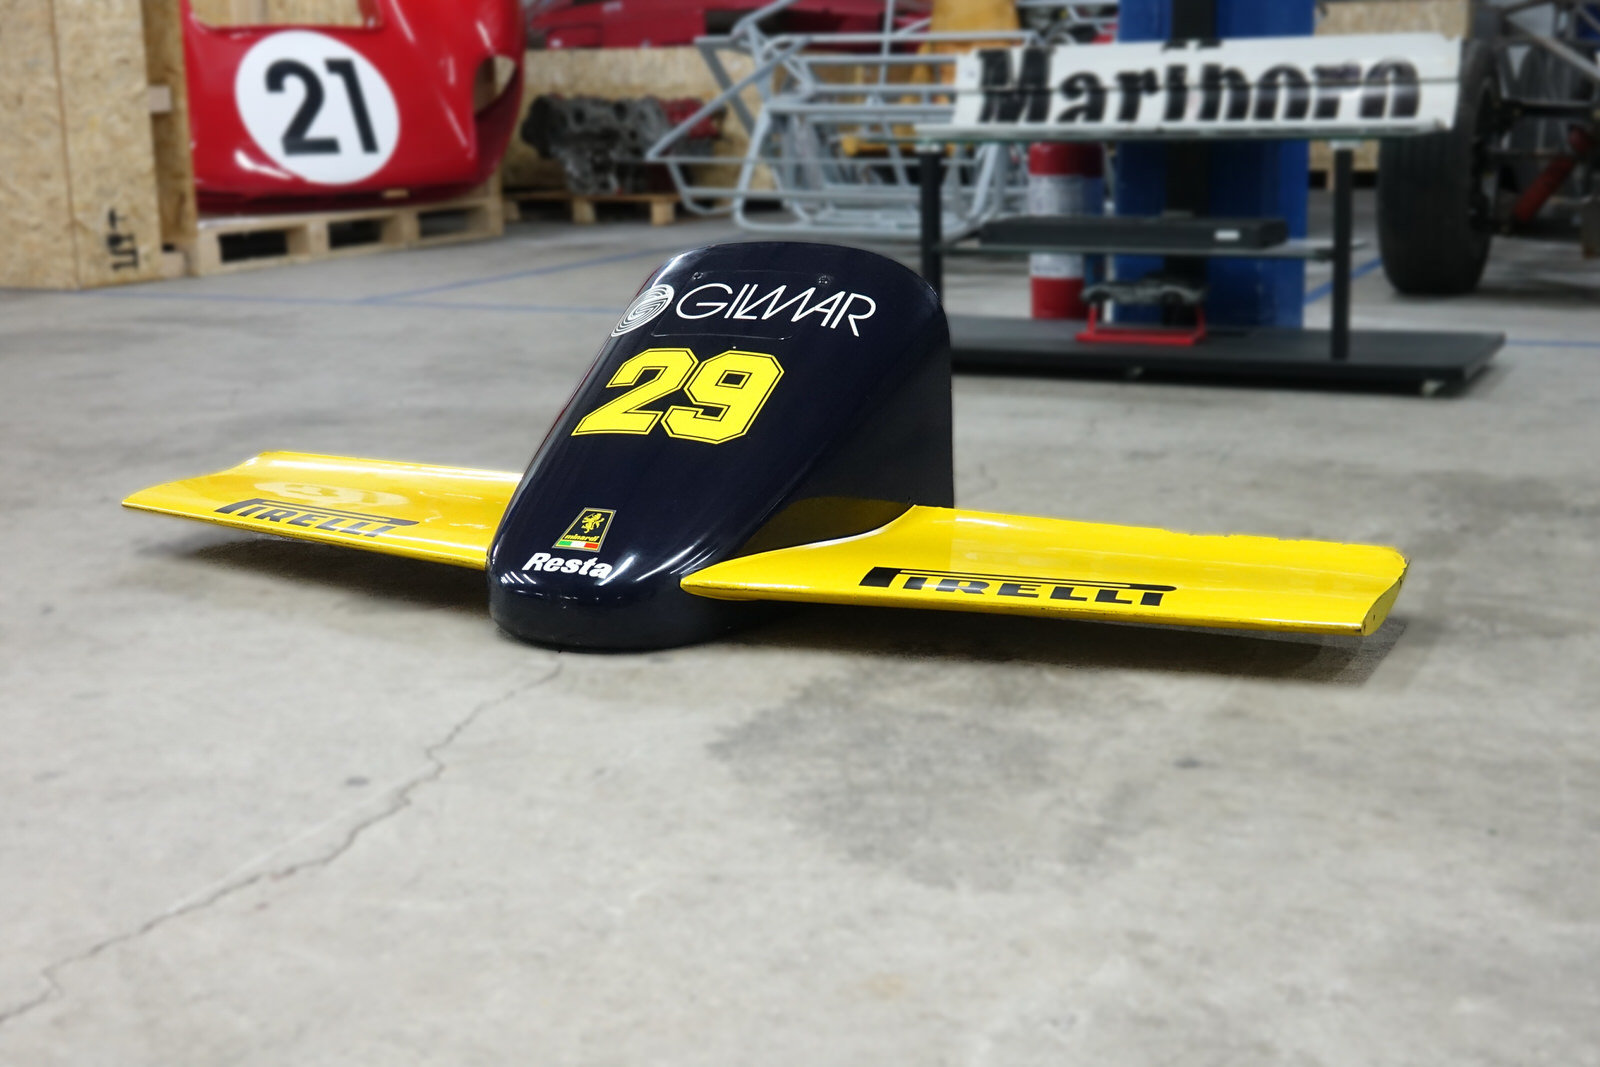 1985 Minardi M185 F1 Front Nose For Sale (picture 8 of 8)